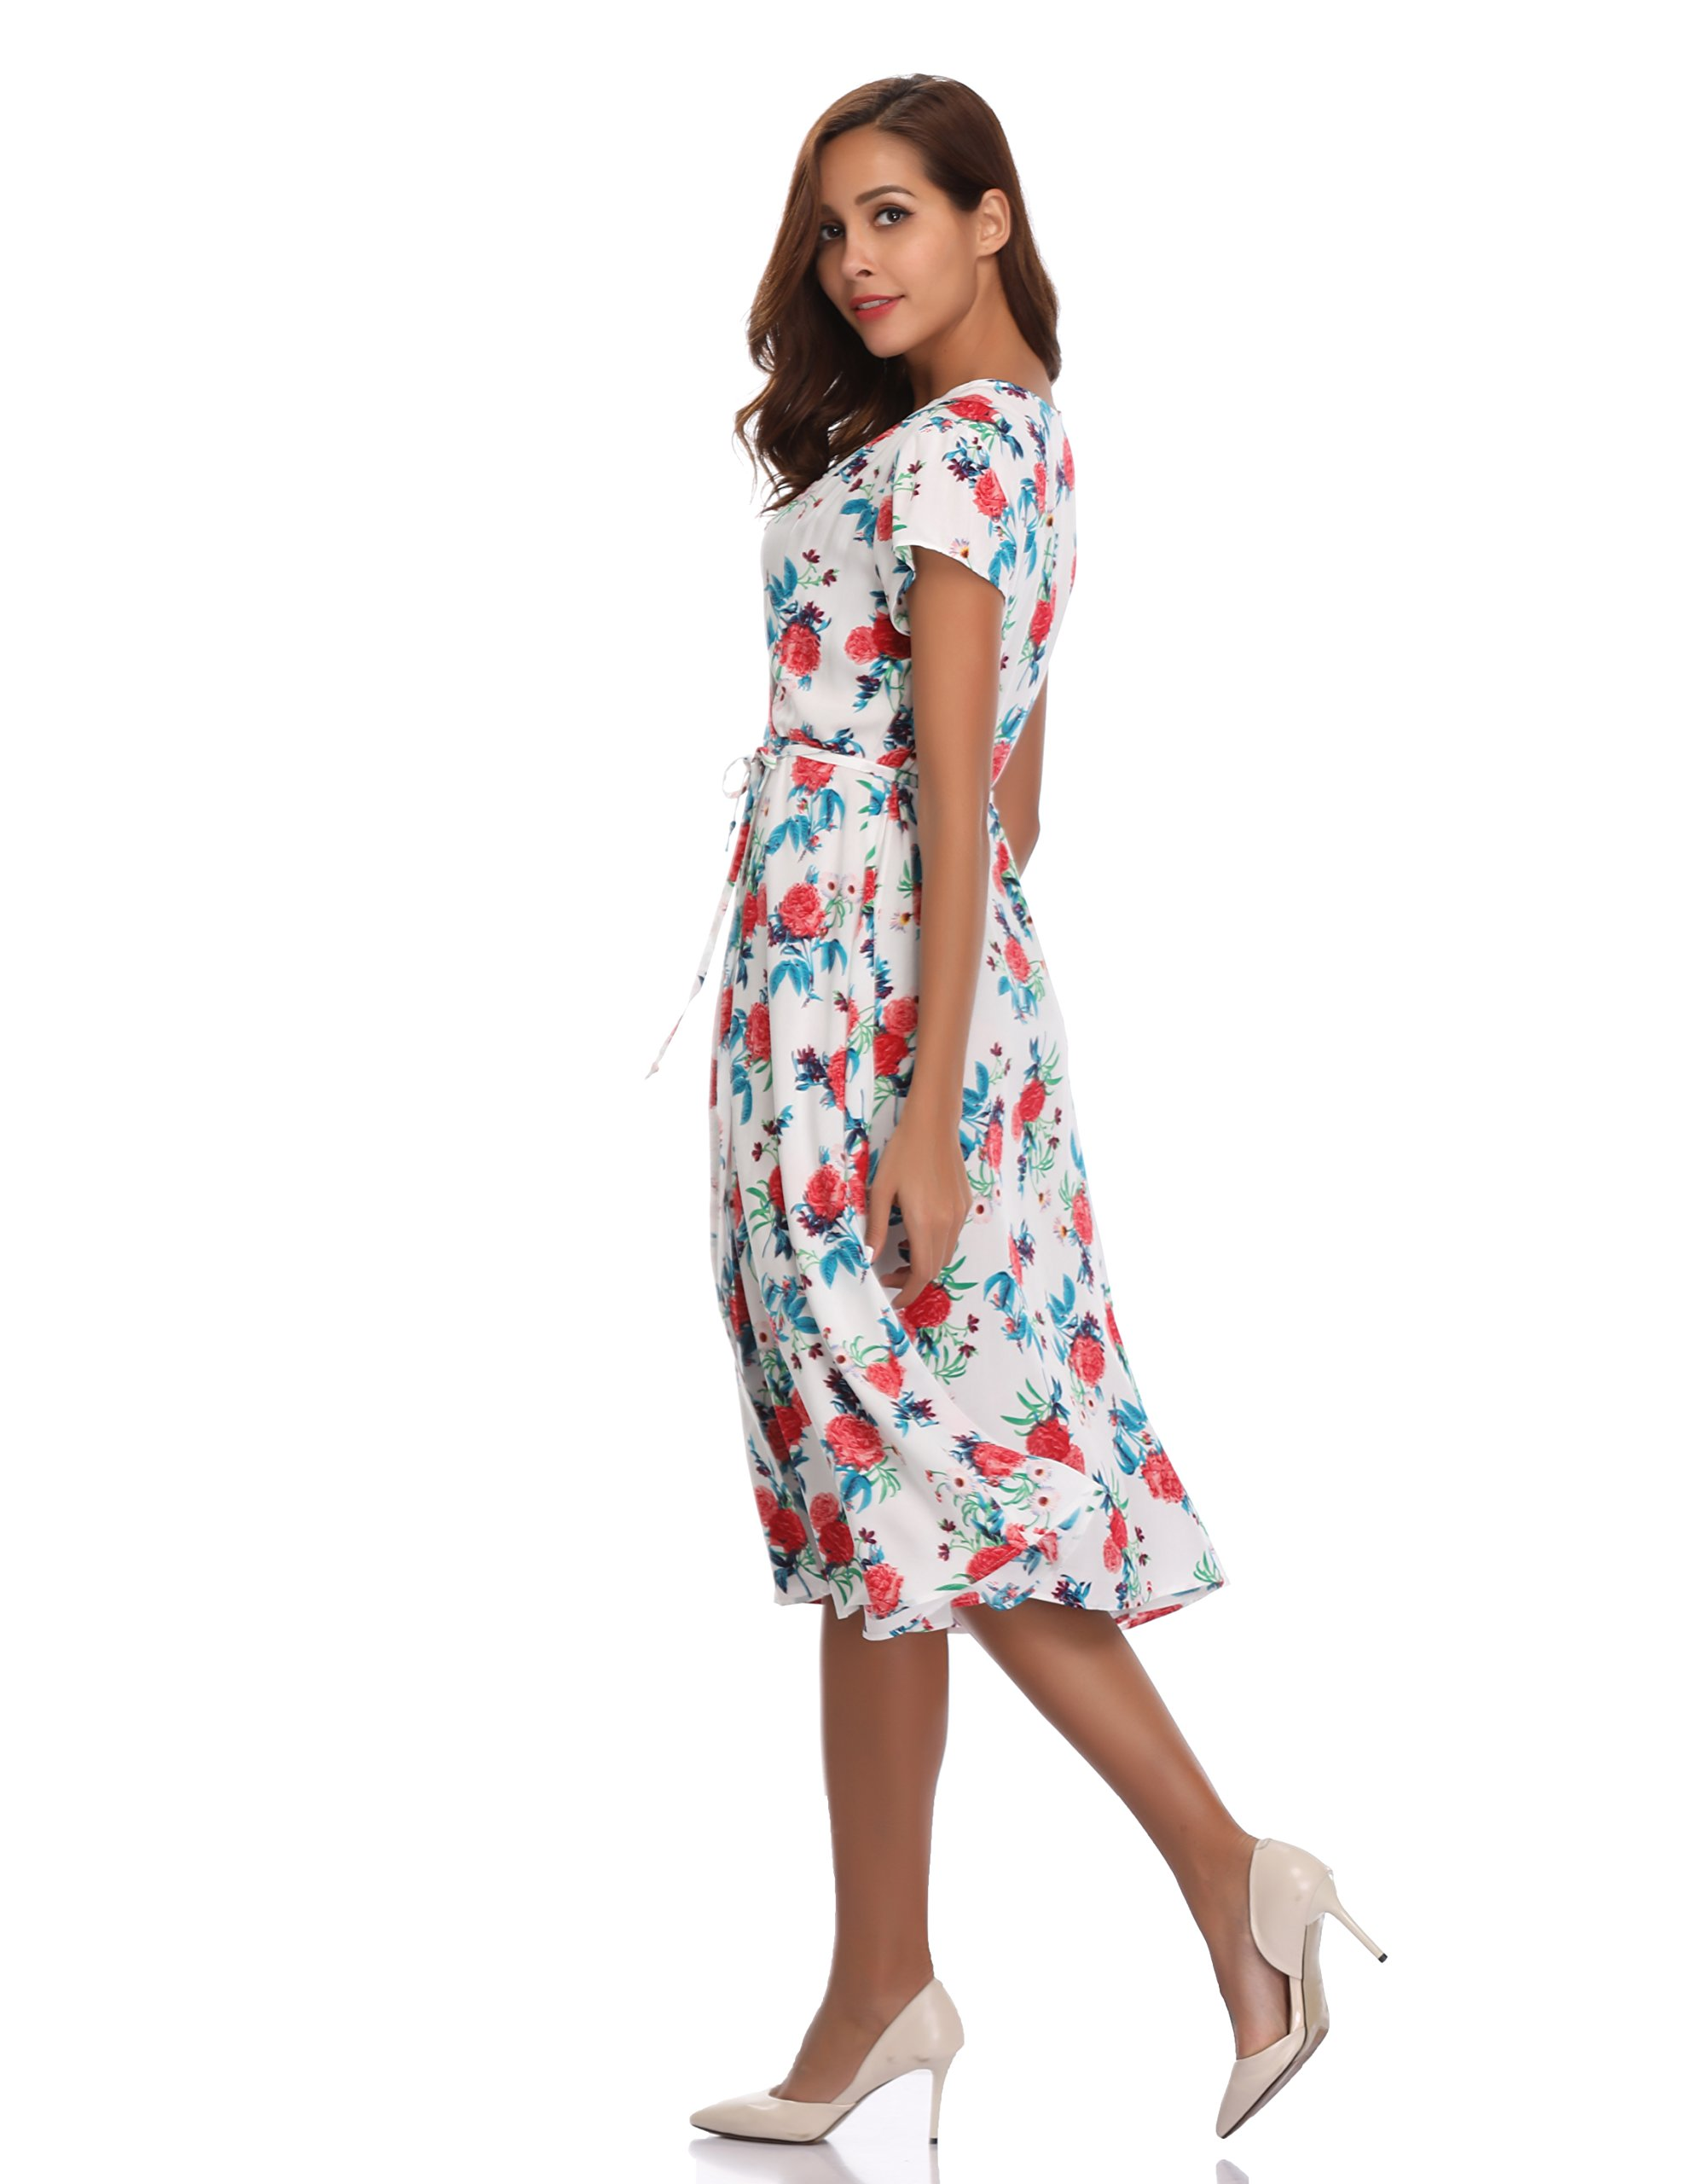 Floating Time Women's Floral Print Short Sleeve Midi Wrap Dress(S, CF42583-3) by Floating Time (Image #4)